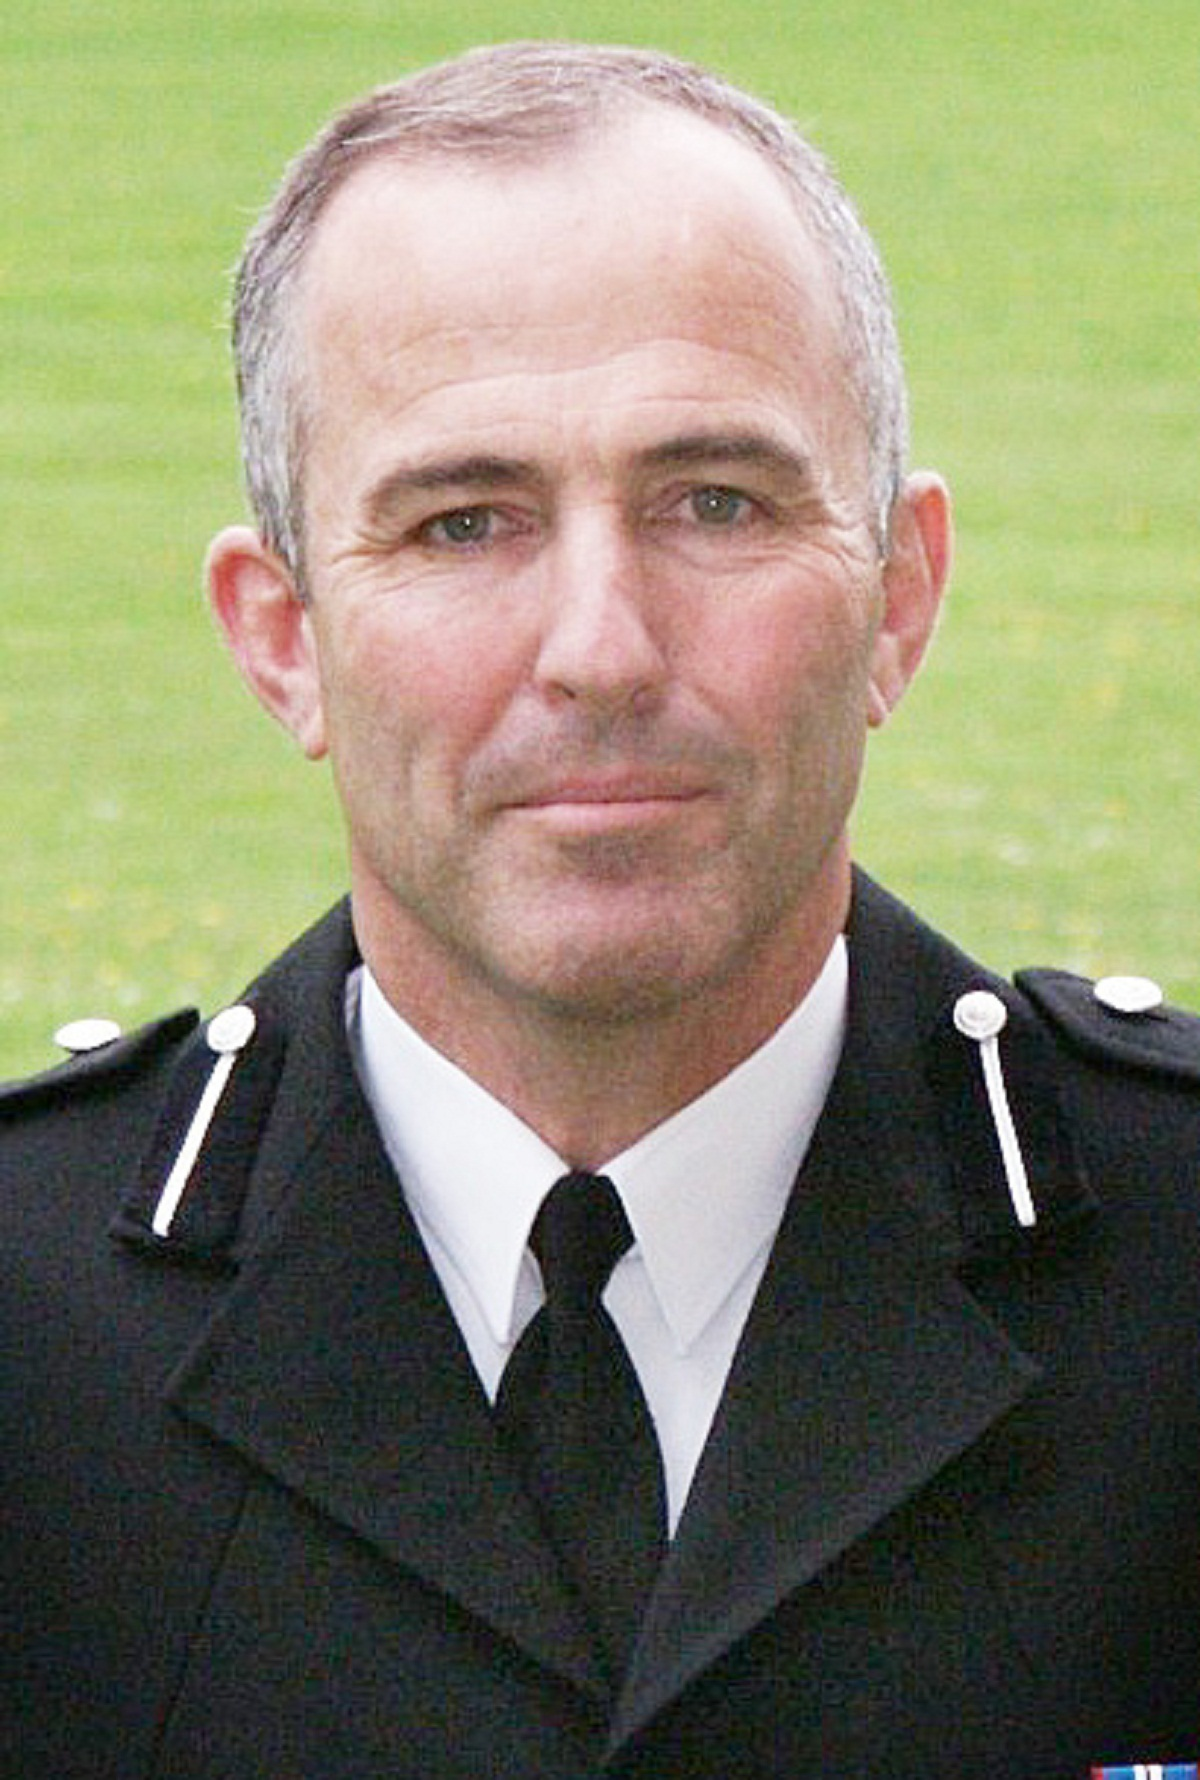 Deputy Chief Constable Tim Madgwick